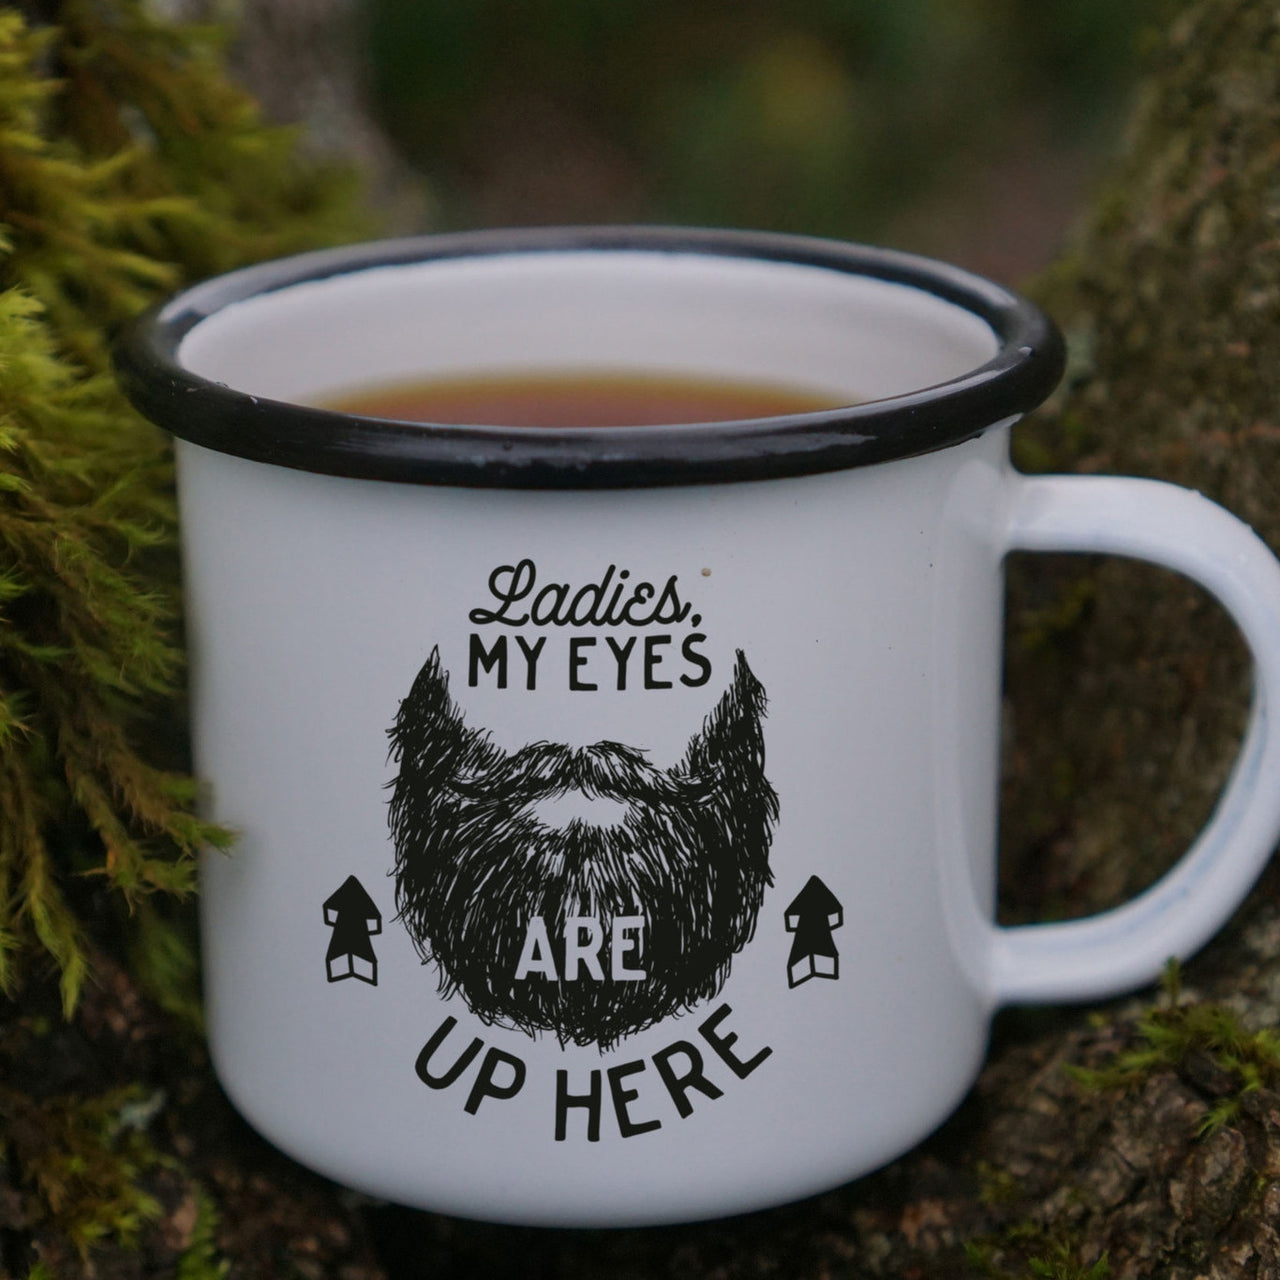 Ladies, My Eyes are Up Here - Funny Man's Coffee Mug - Enamel Camping Mug-Enamel Co.